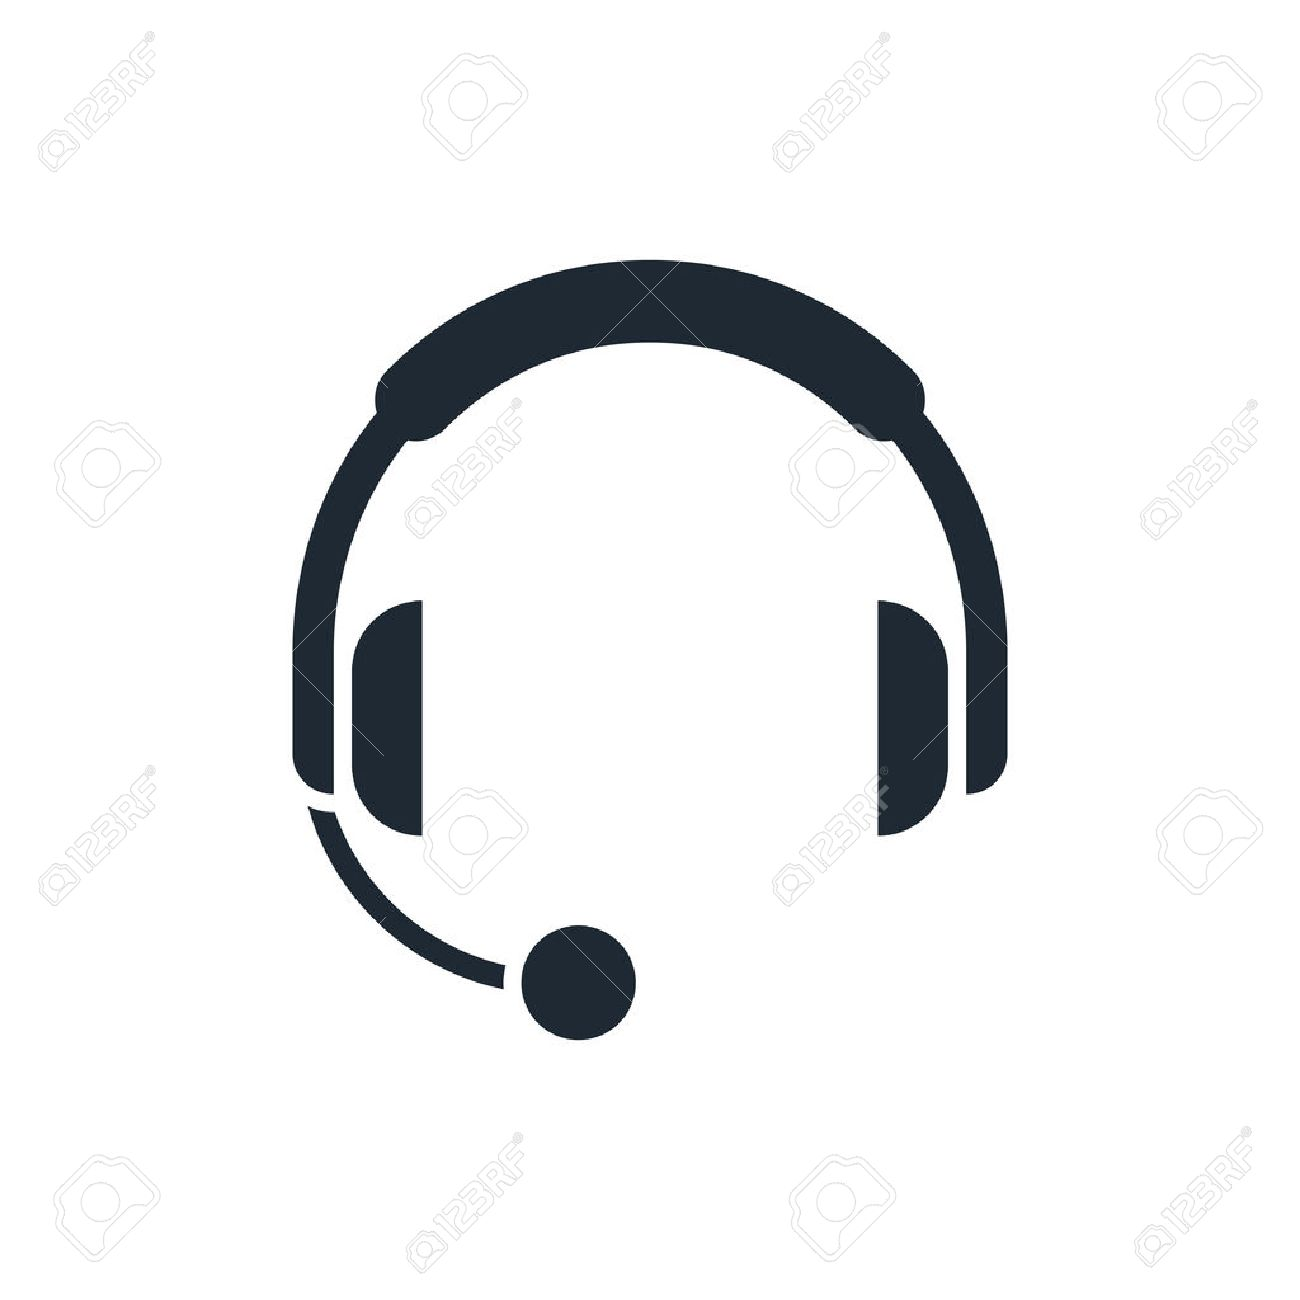 Headphones With Microphone Icon Royalty Free Cliparts, Vectors, And ...